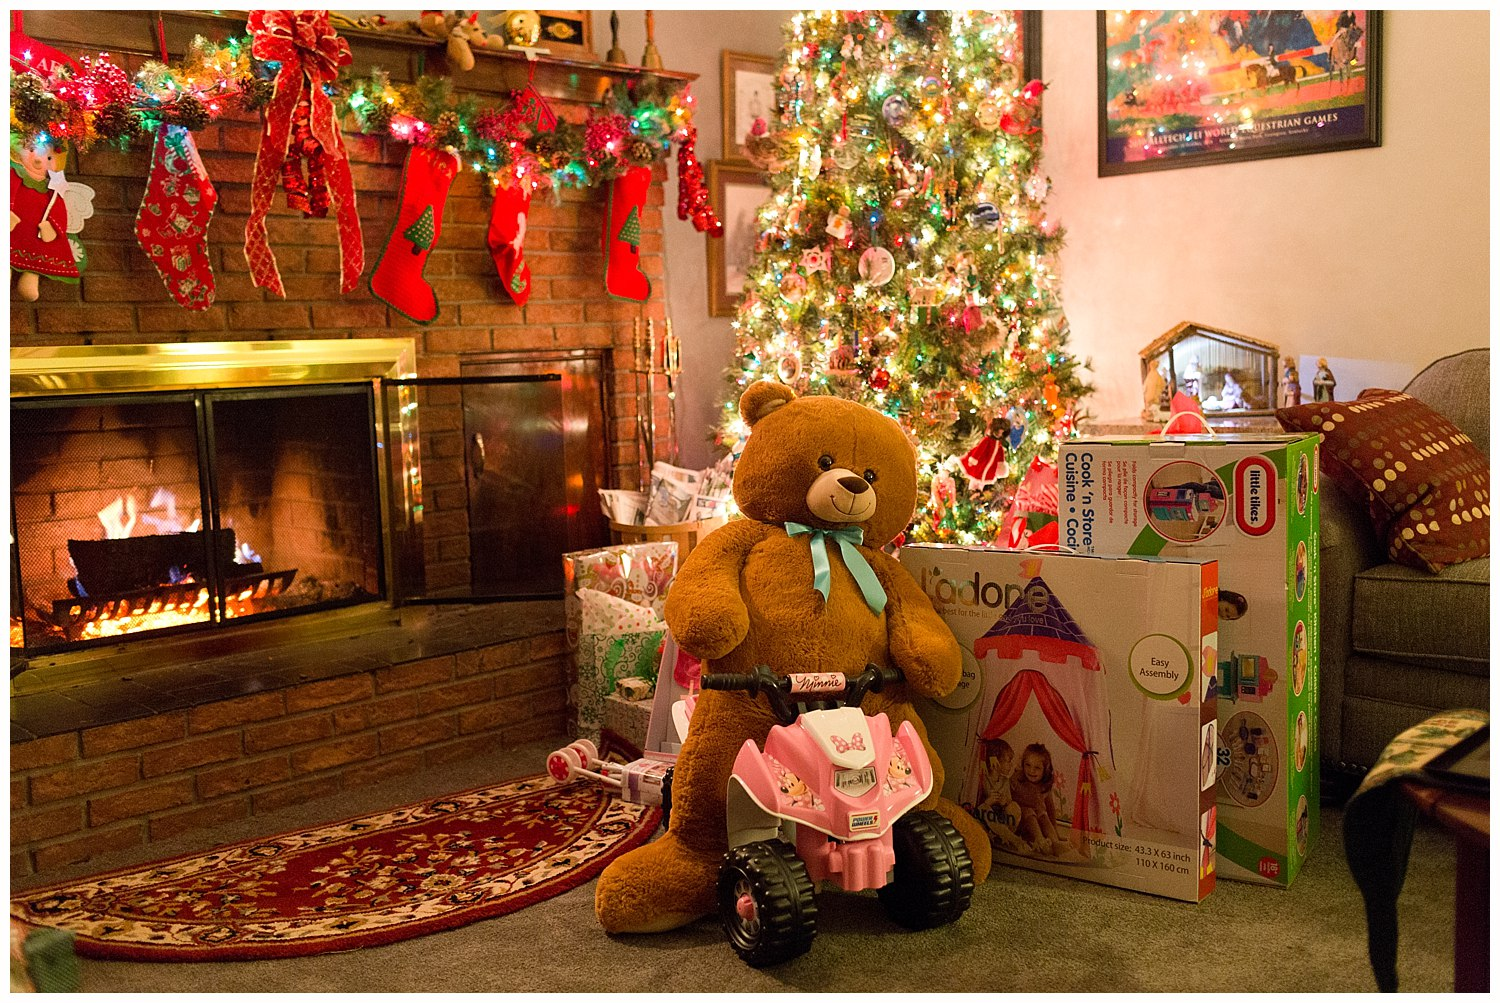 toys placed under tree after Santa Claus comes on Christmas Eve